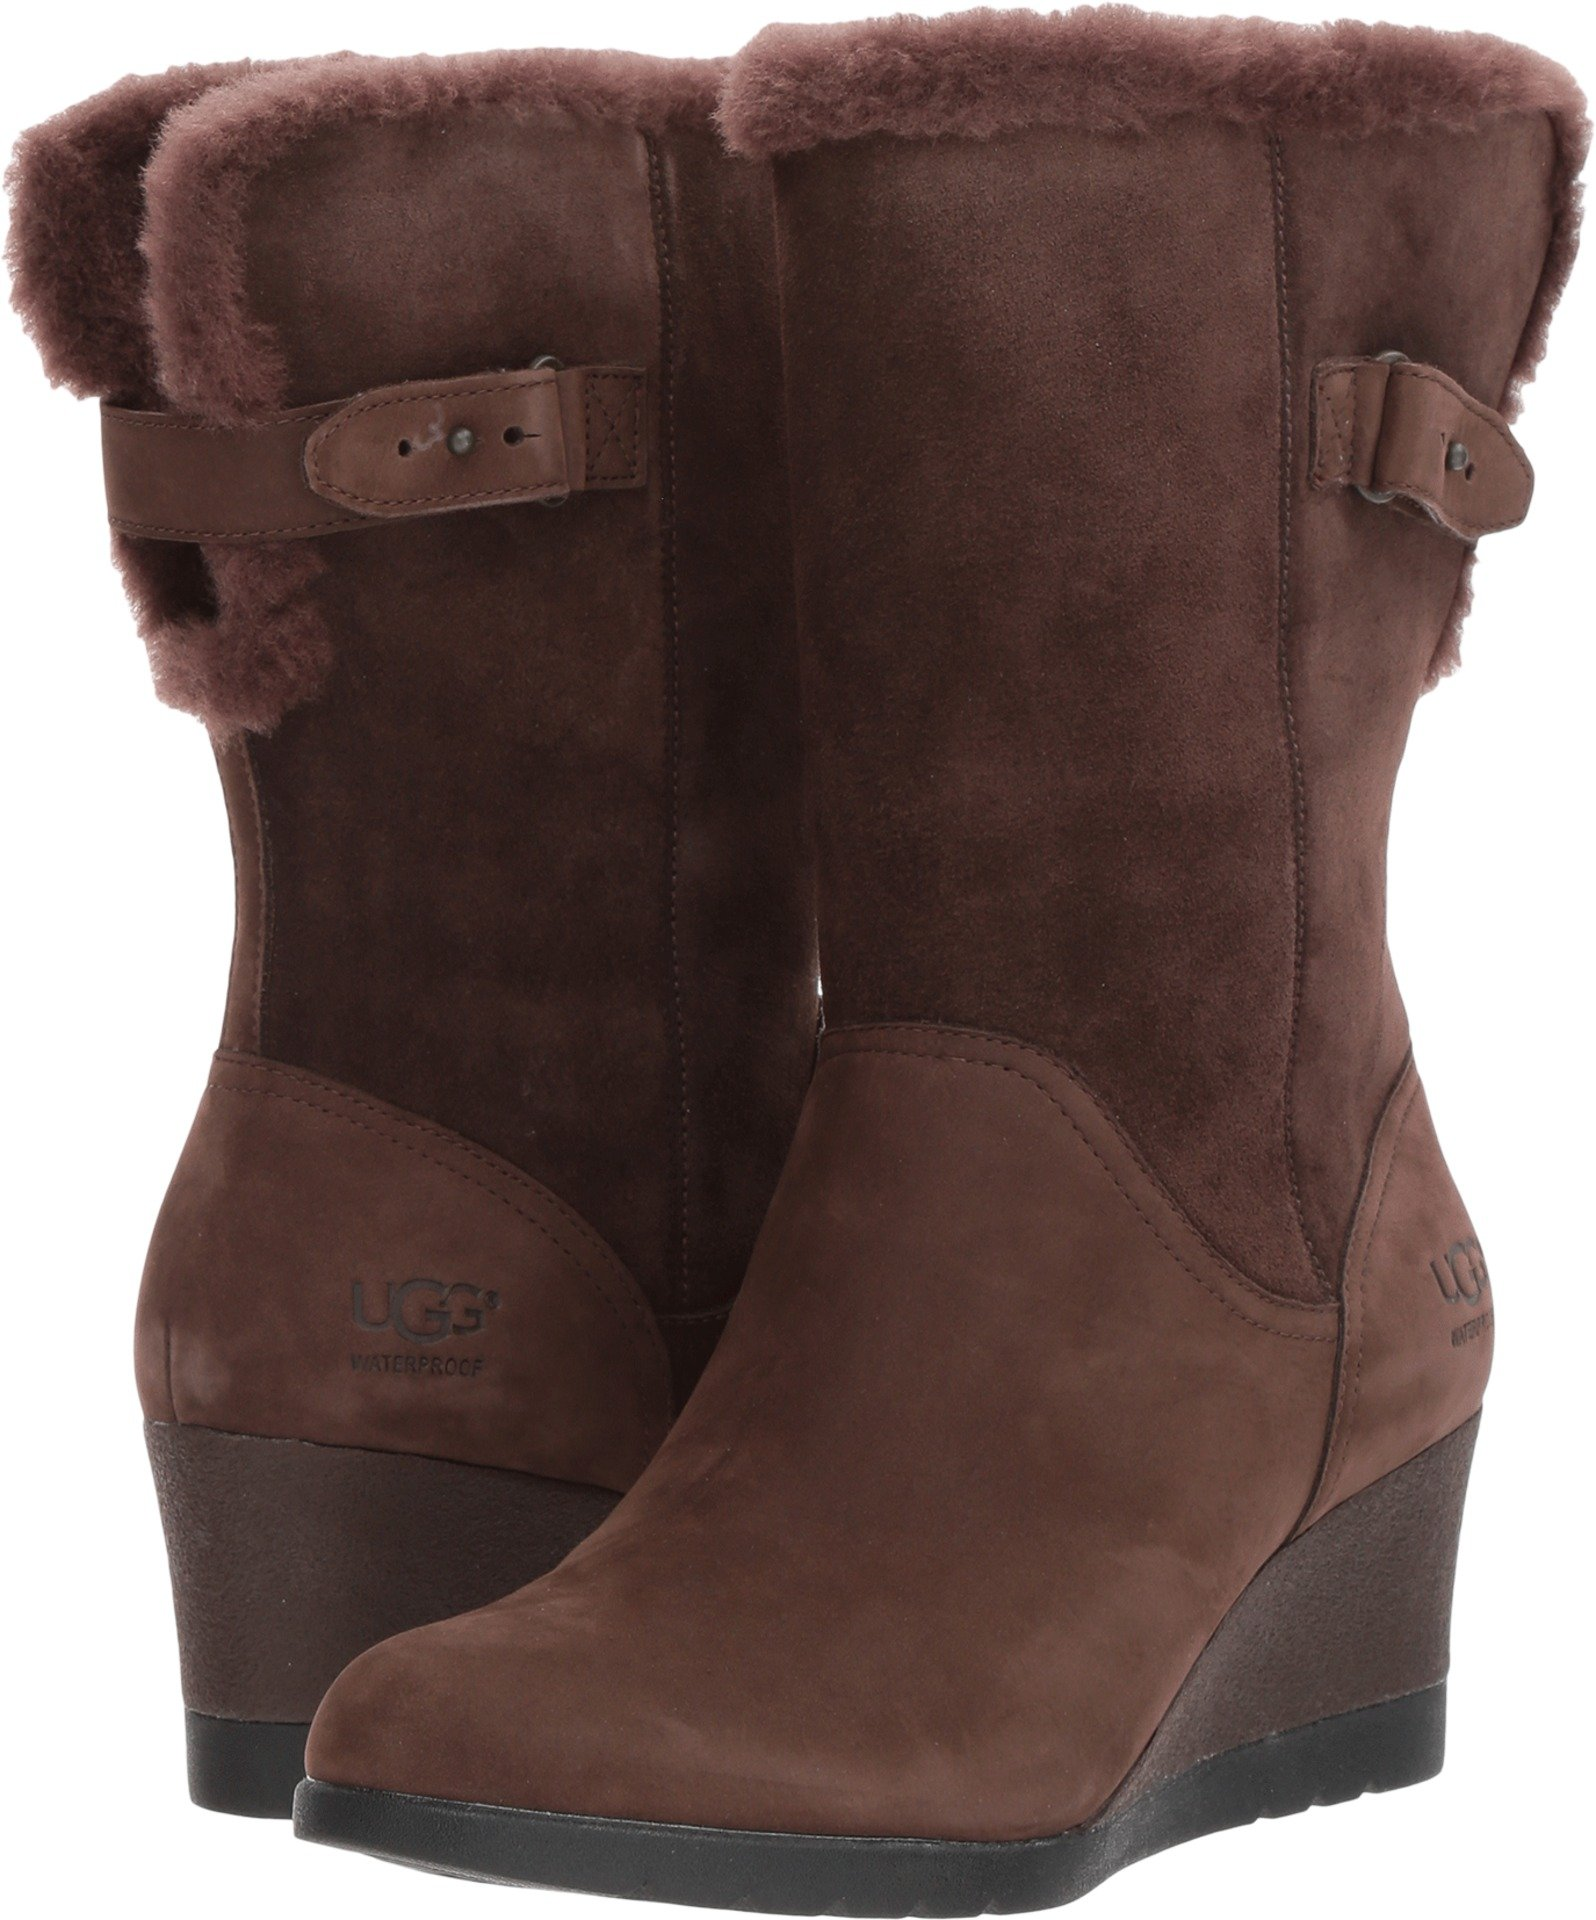 UGG Women's Edelina Winter Boot, Grizzly, 8.5 M US